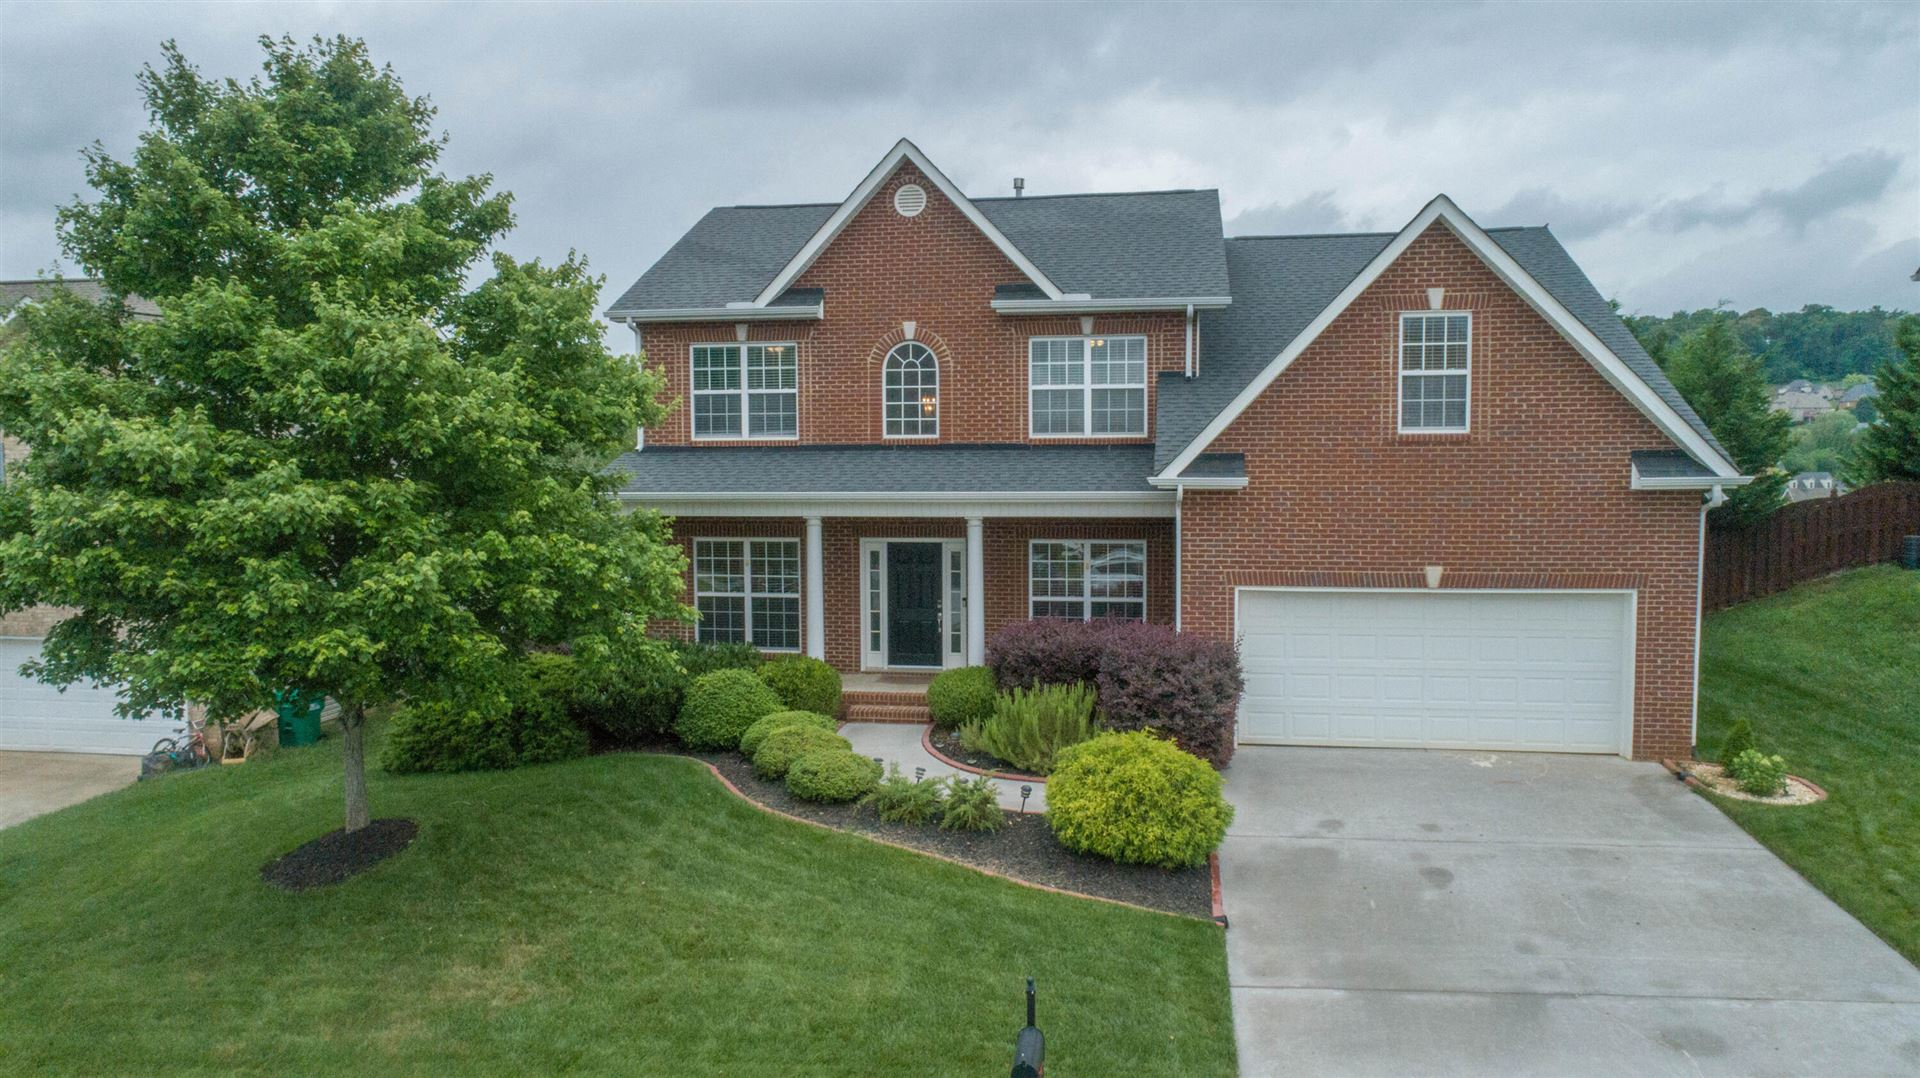 Photo of 9715 Haversack Drive, Knoxville, TN 37922 (MLS # 1156378)